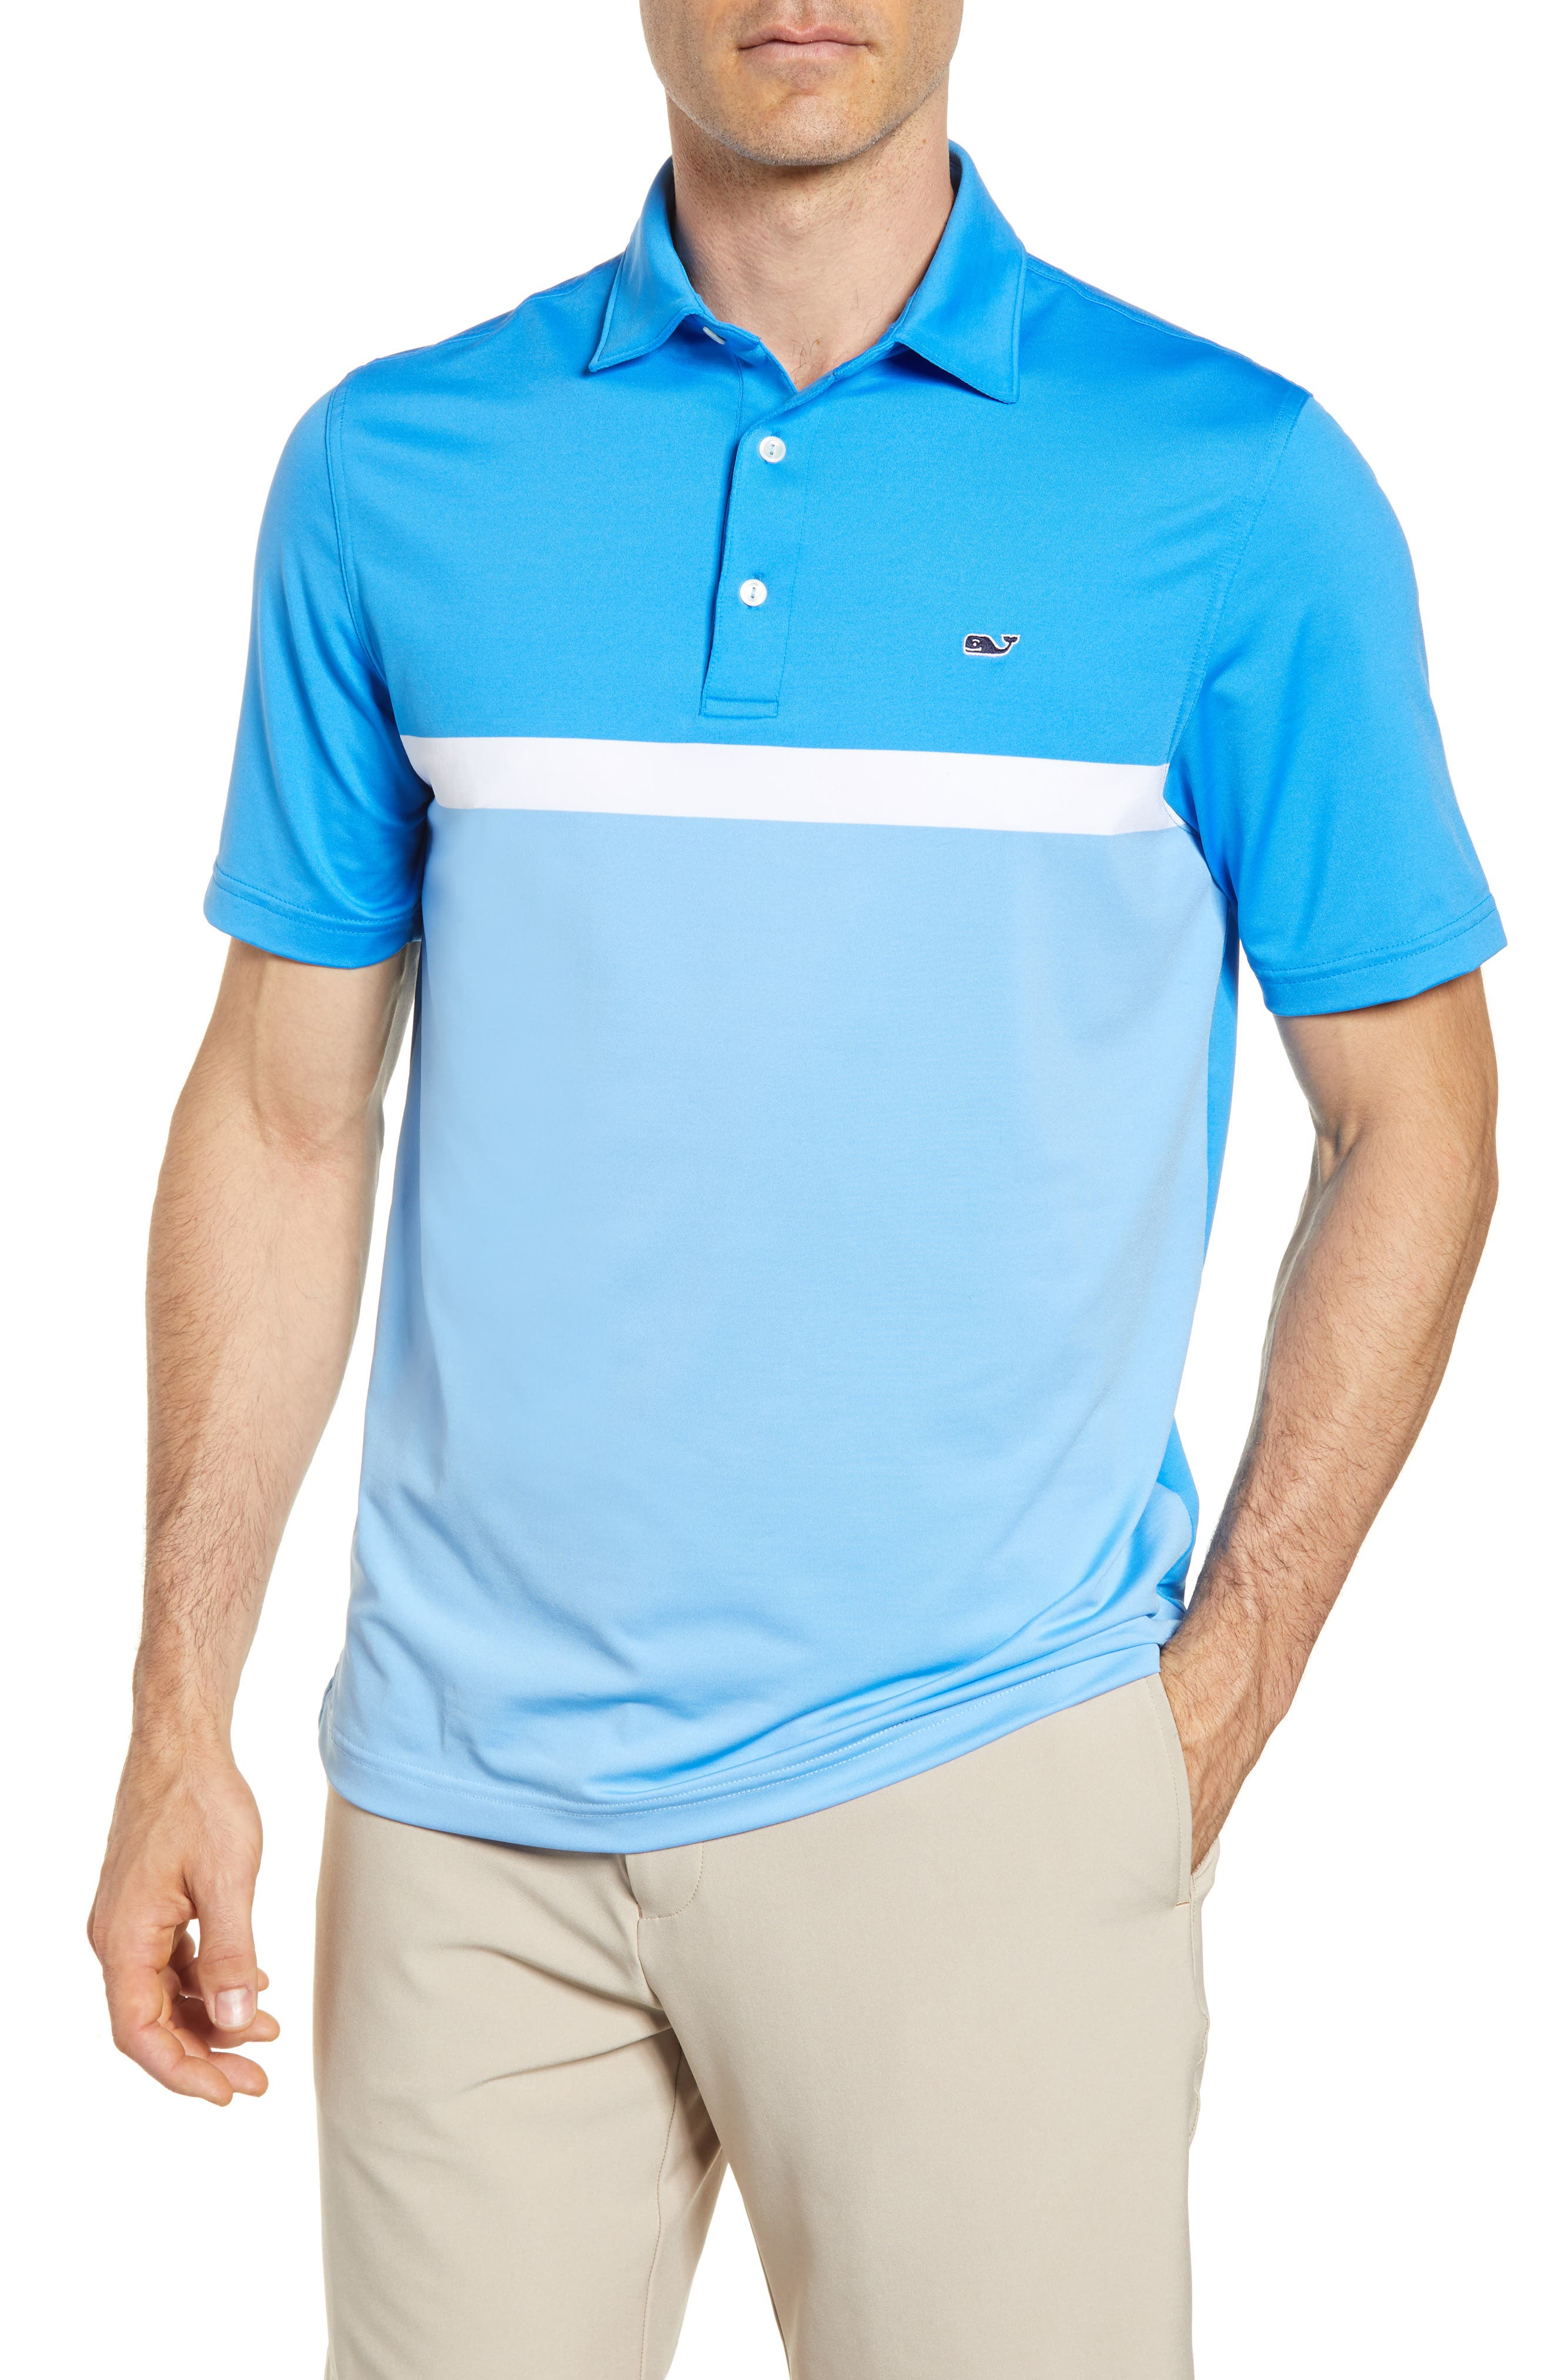 Alternate Image 1 Selected - vineyard vines McGovern Stretch Colorblock Polo